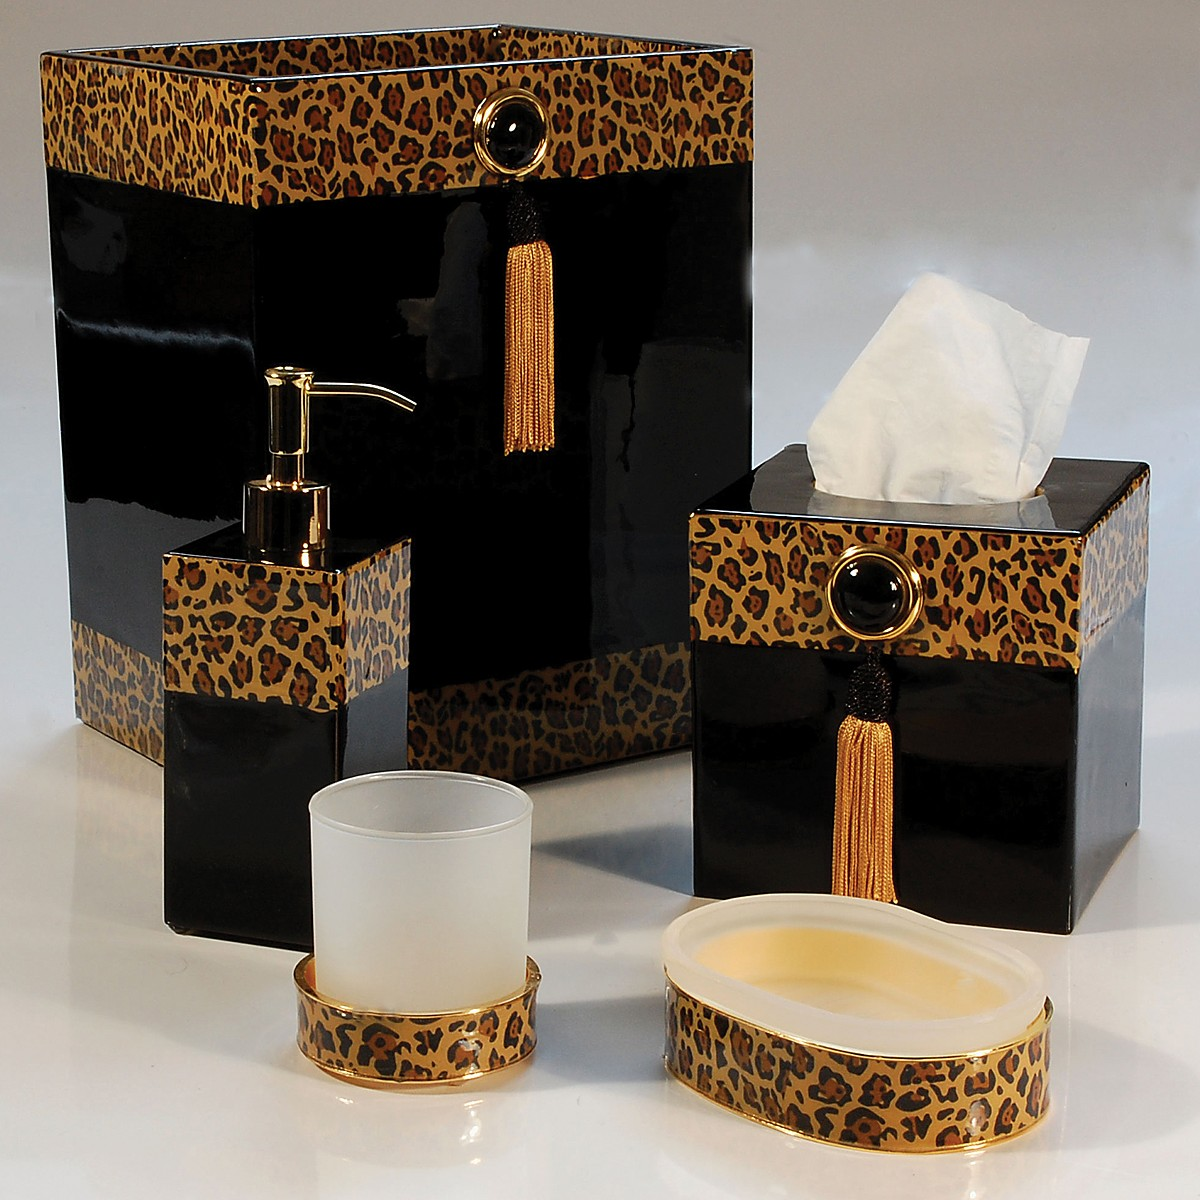 Home design ideas leopard bathroom decor for Home bathroom accessories